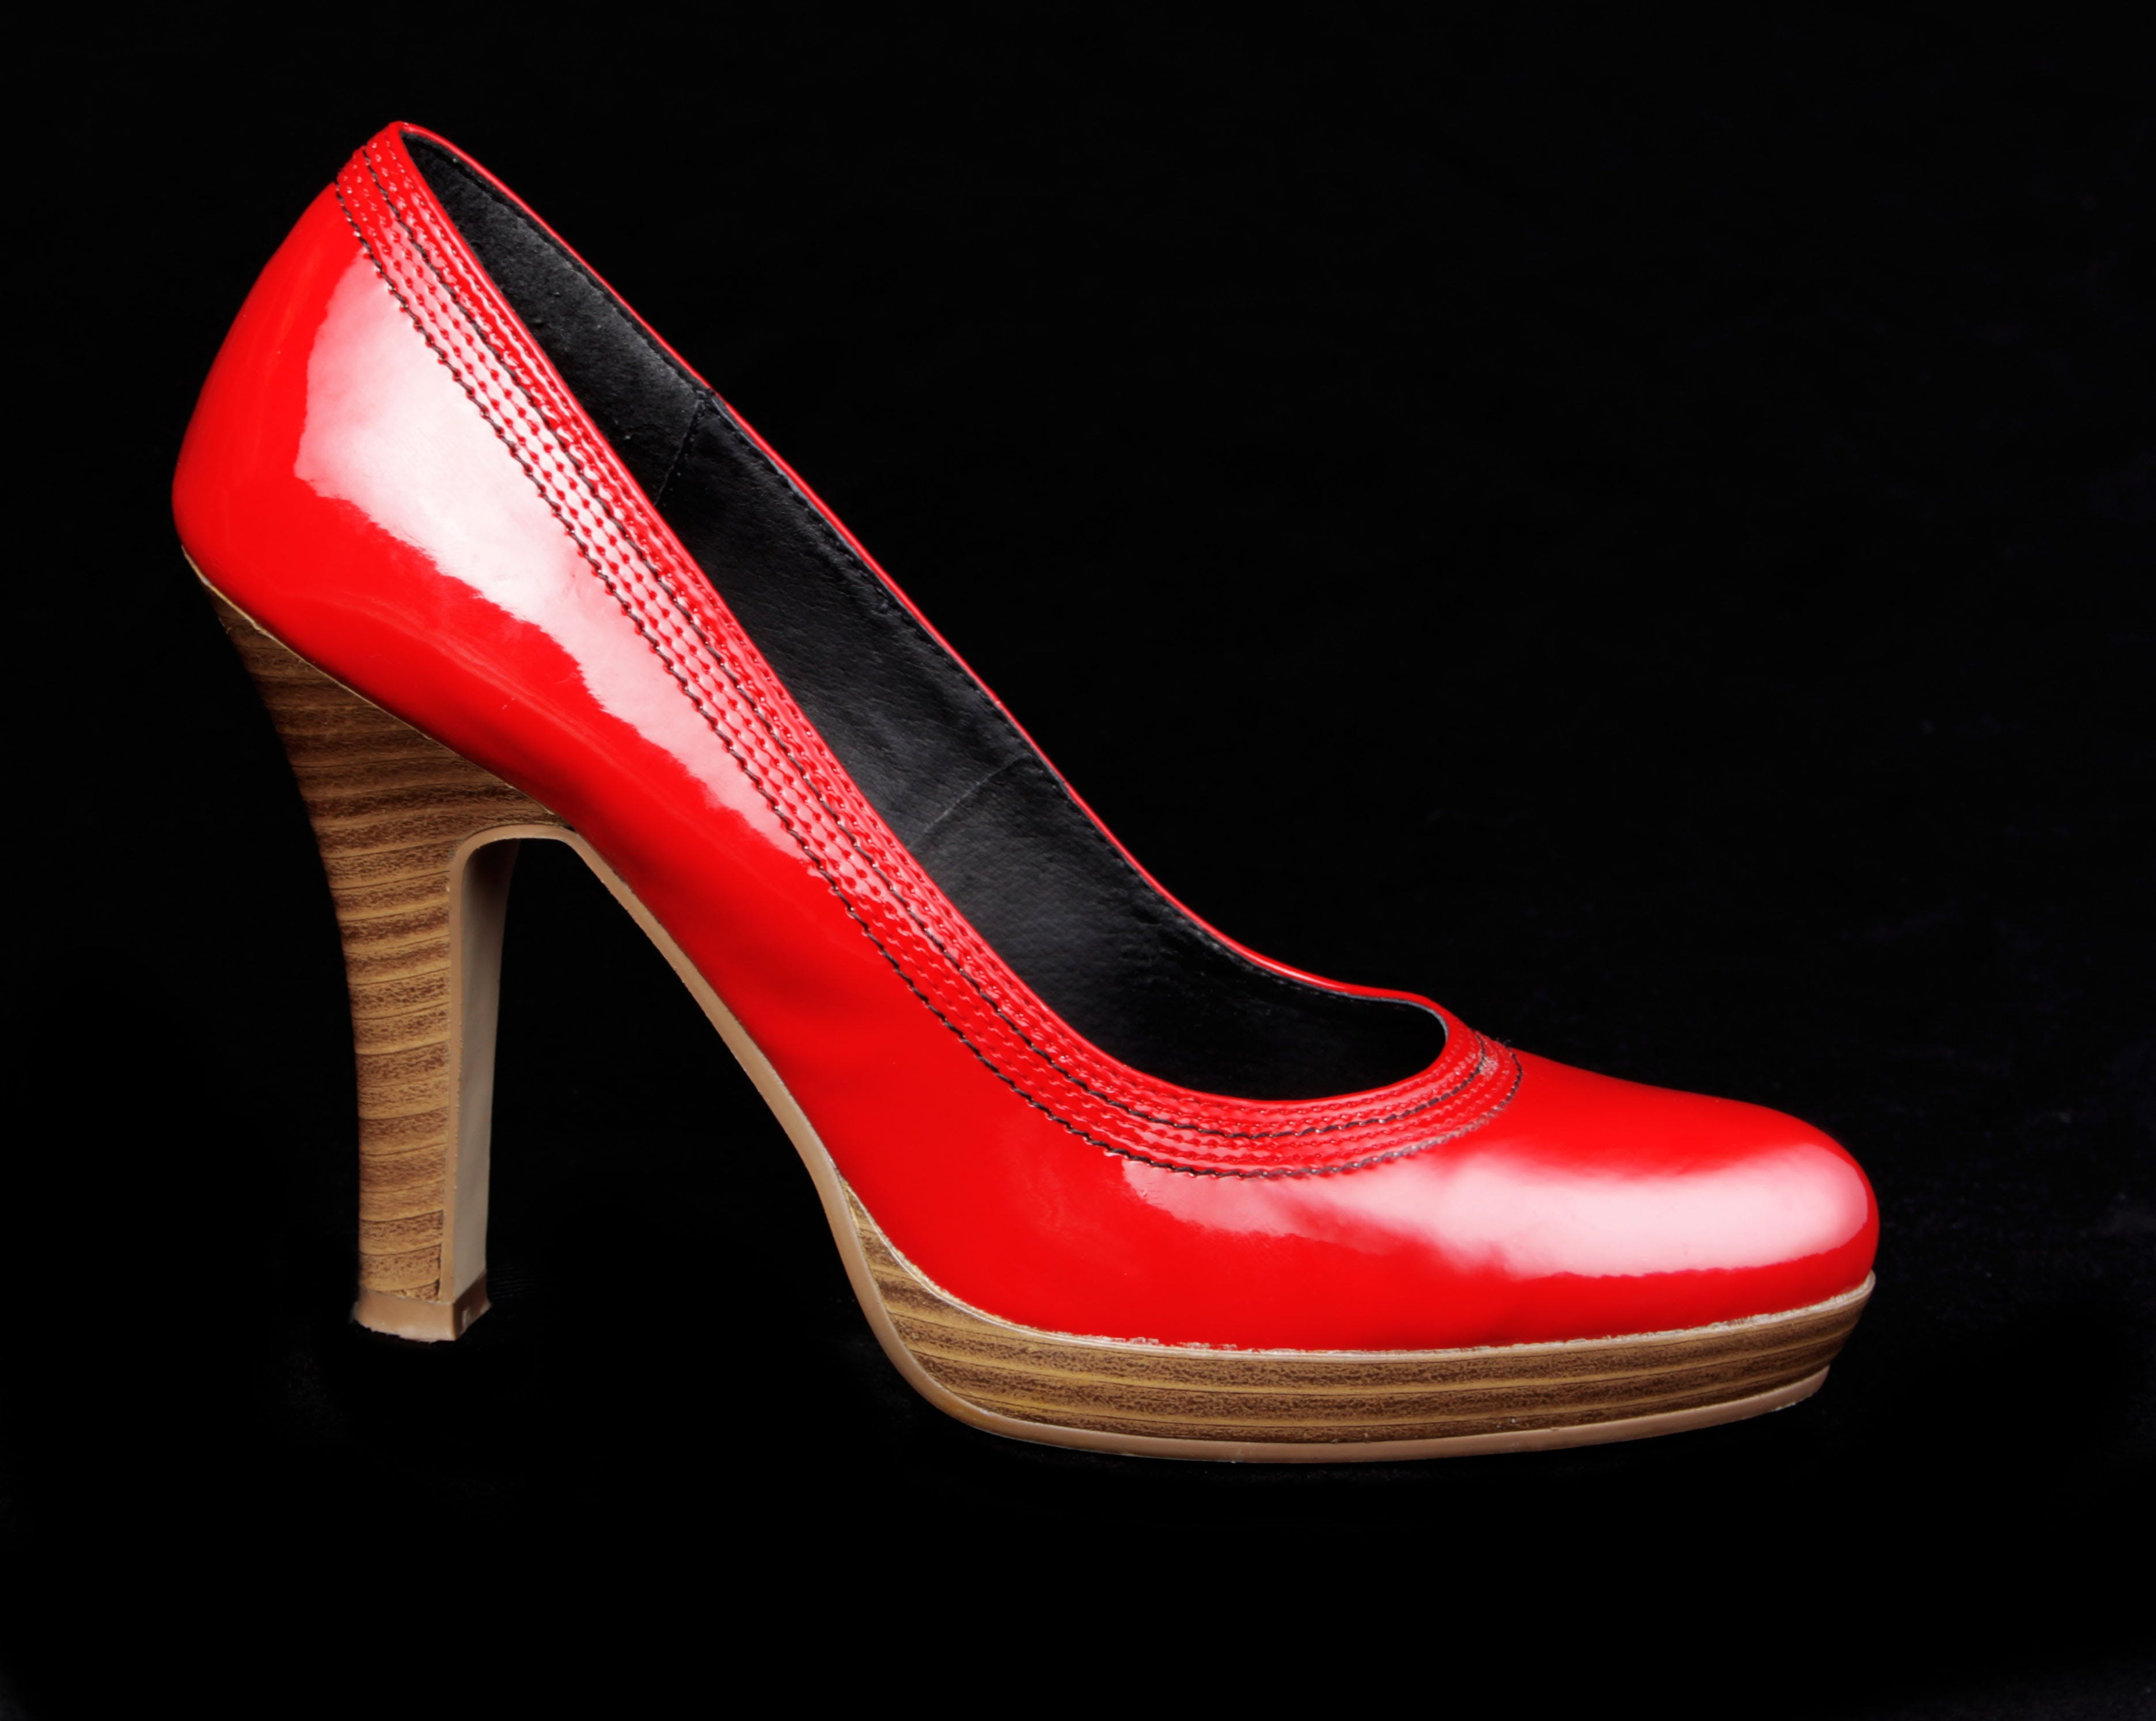 Free stock photo of red, shoe, footwear, high heel